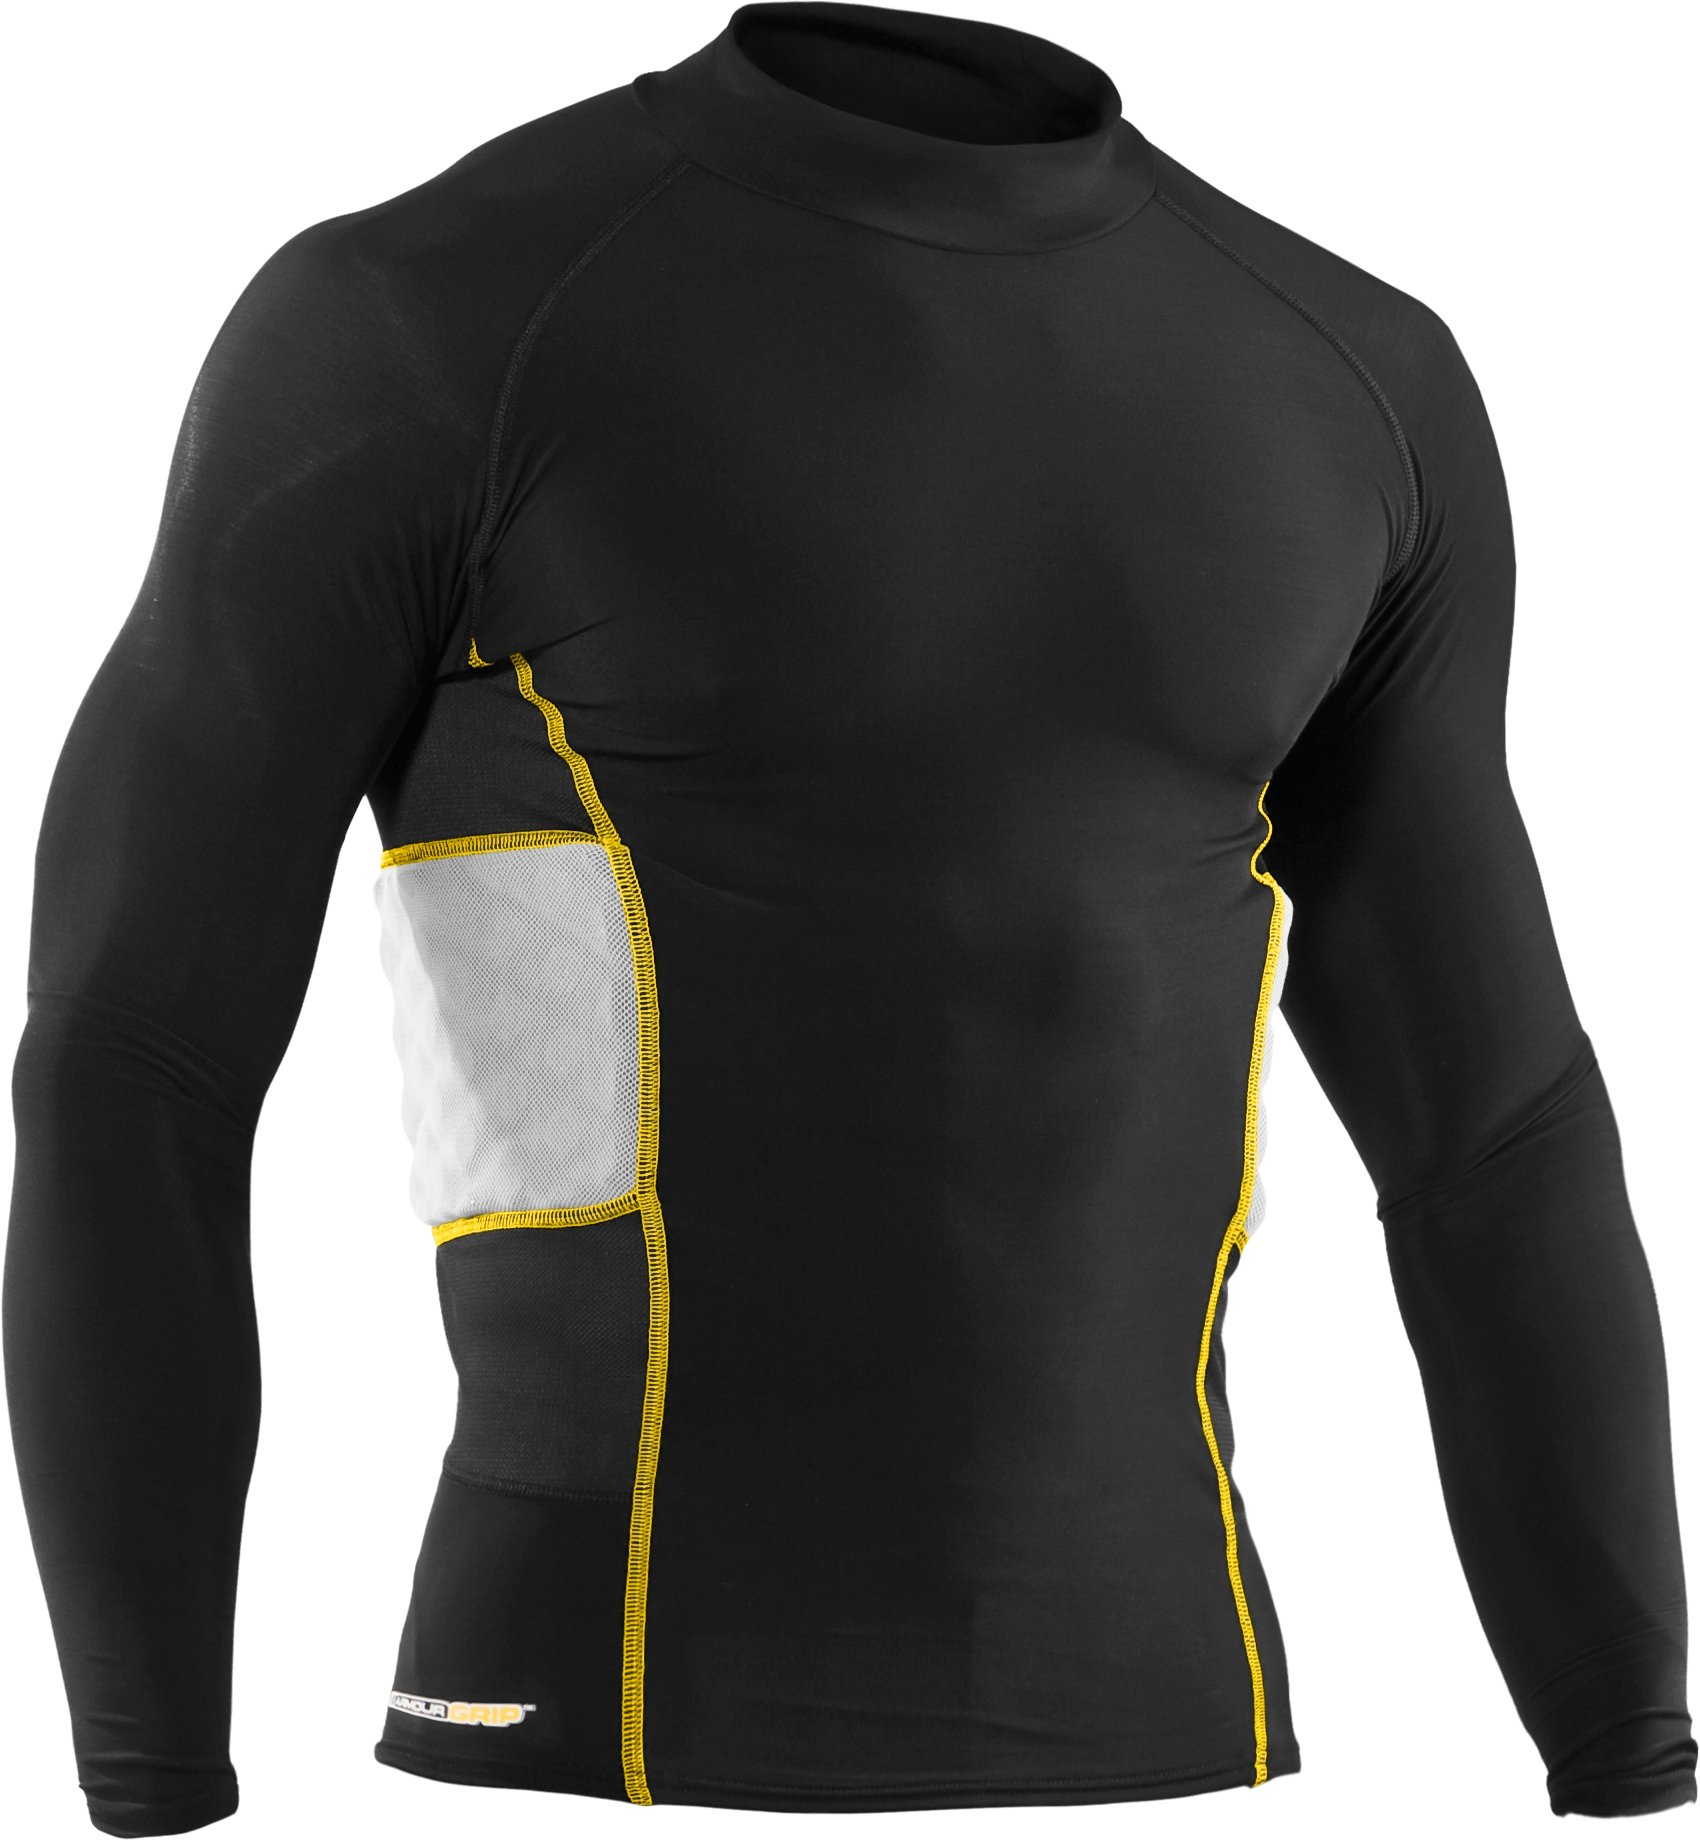 Men's Hockey Gameday Armour® Compression Long Sleeve Shirt, Black